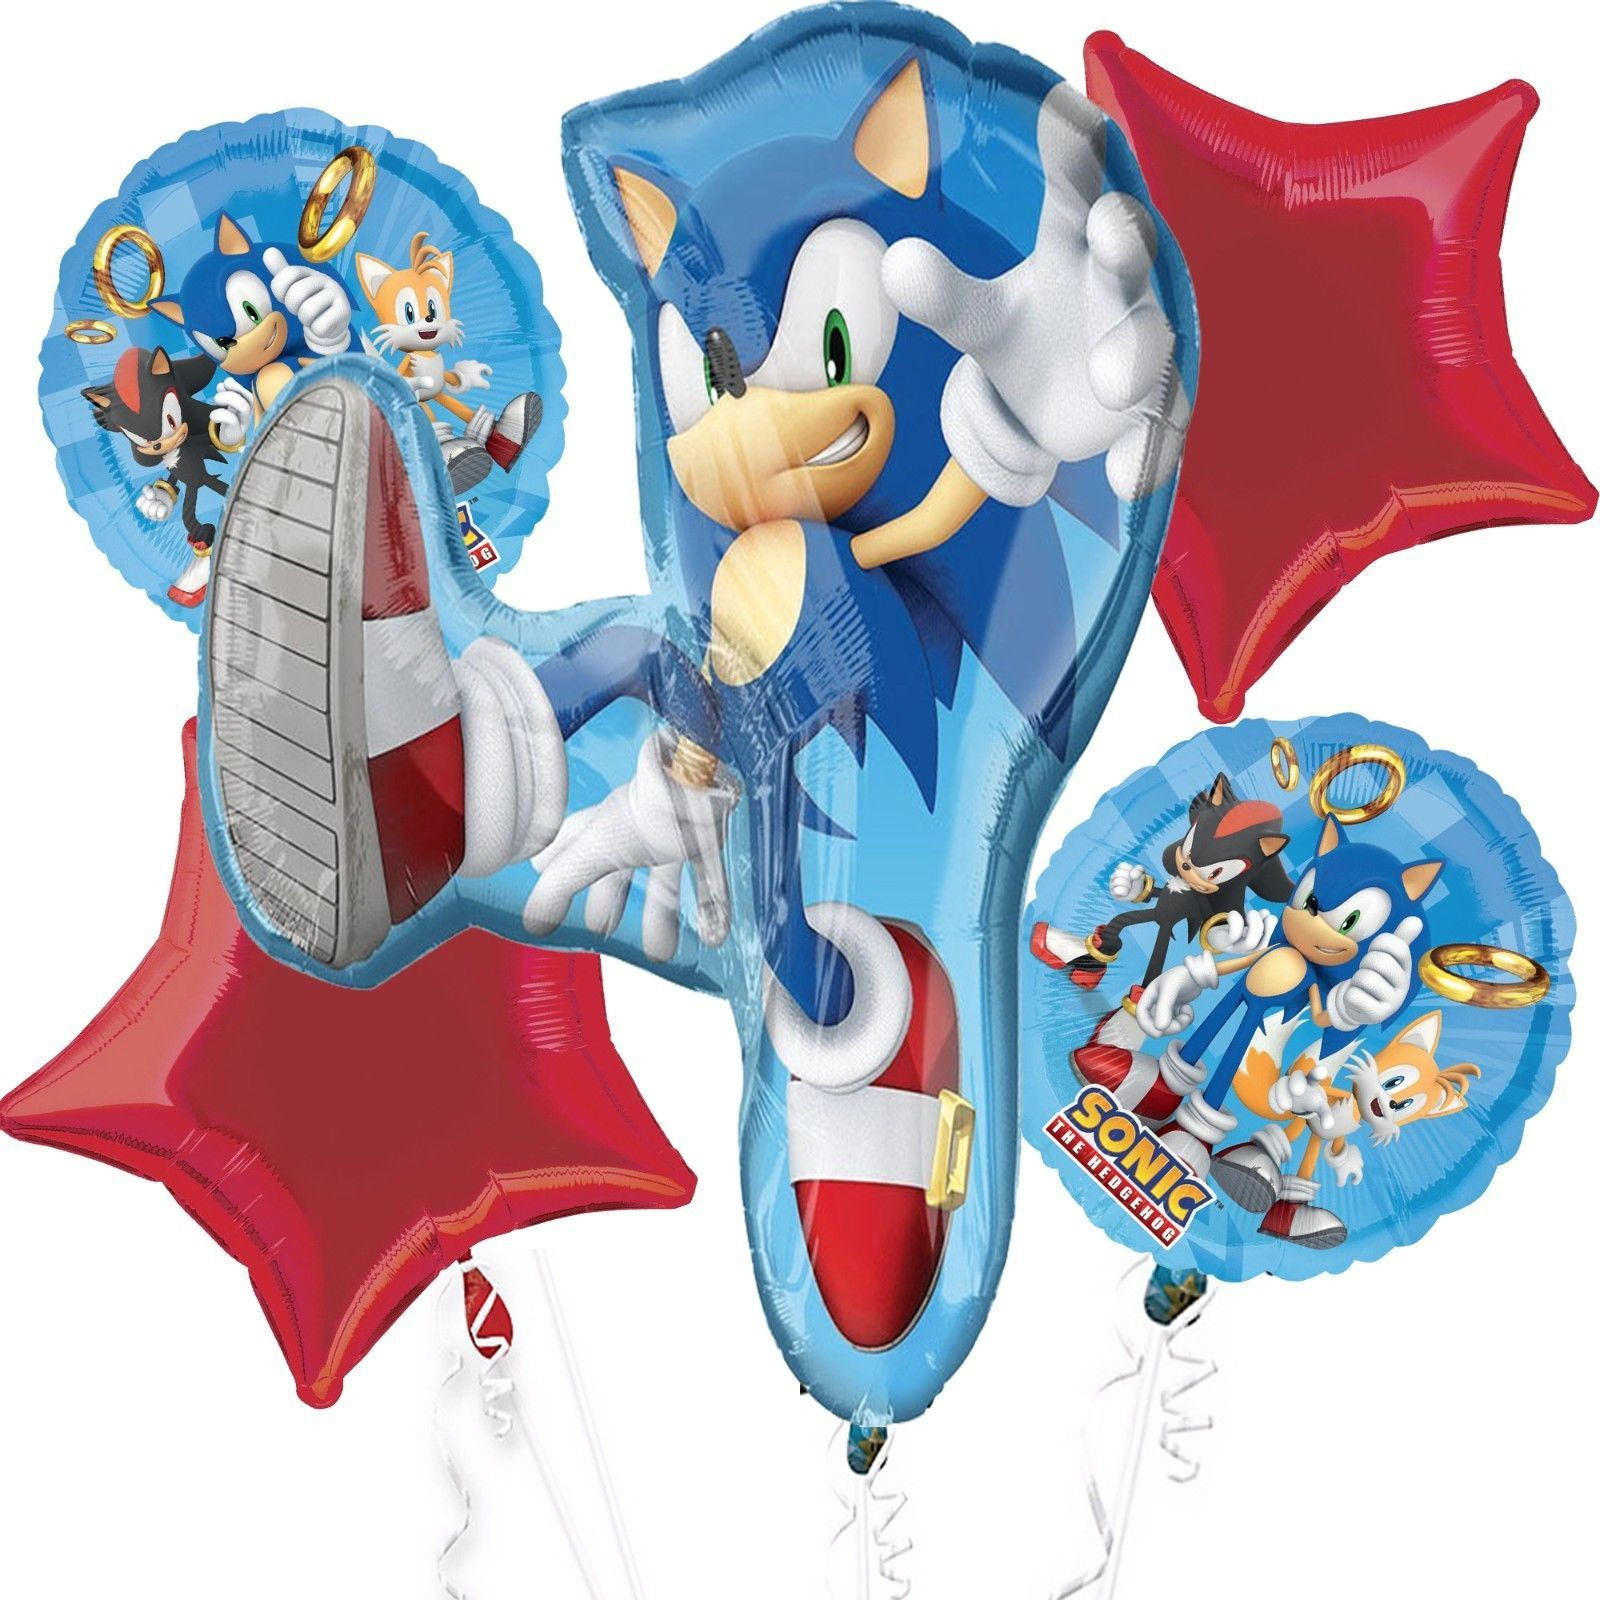 Mayflower Products Sonic The Hedgehog 6th Birthday Party Supplies 8 Guest